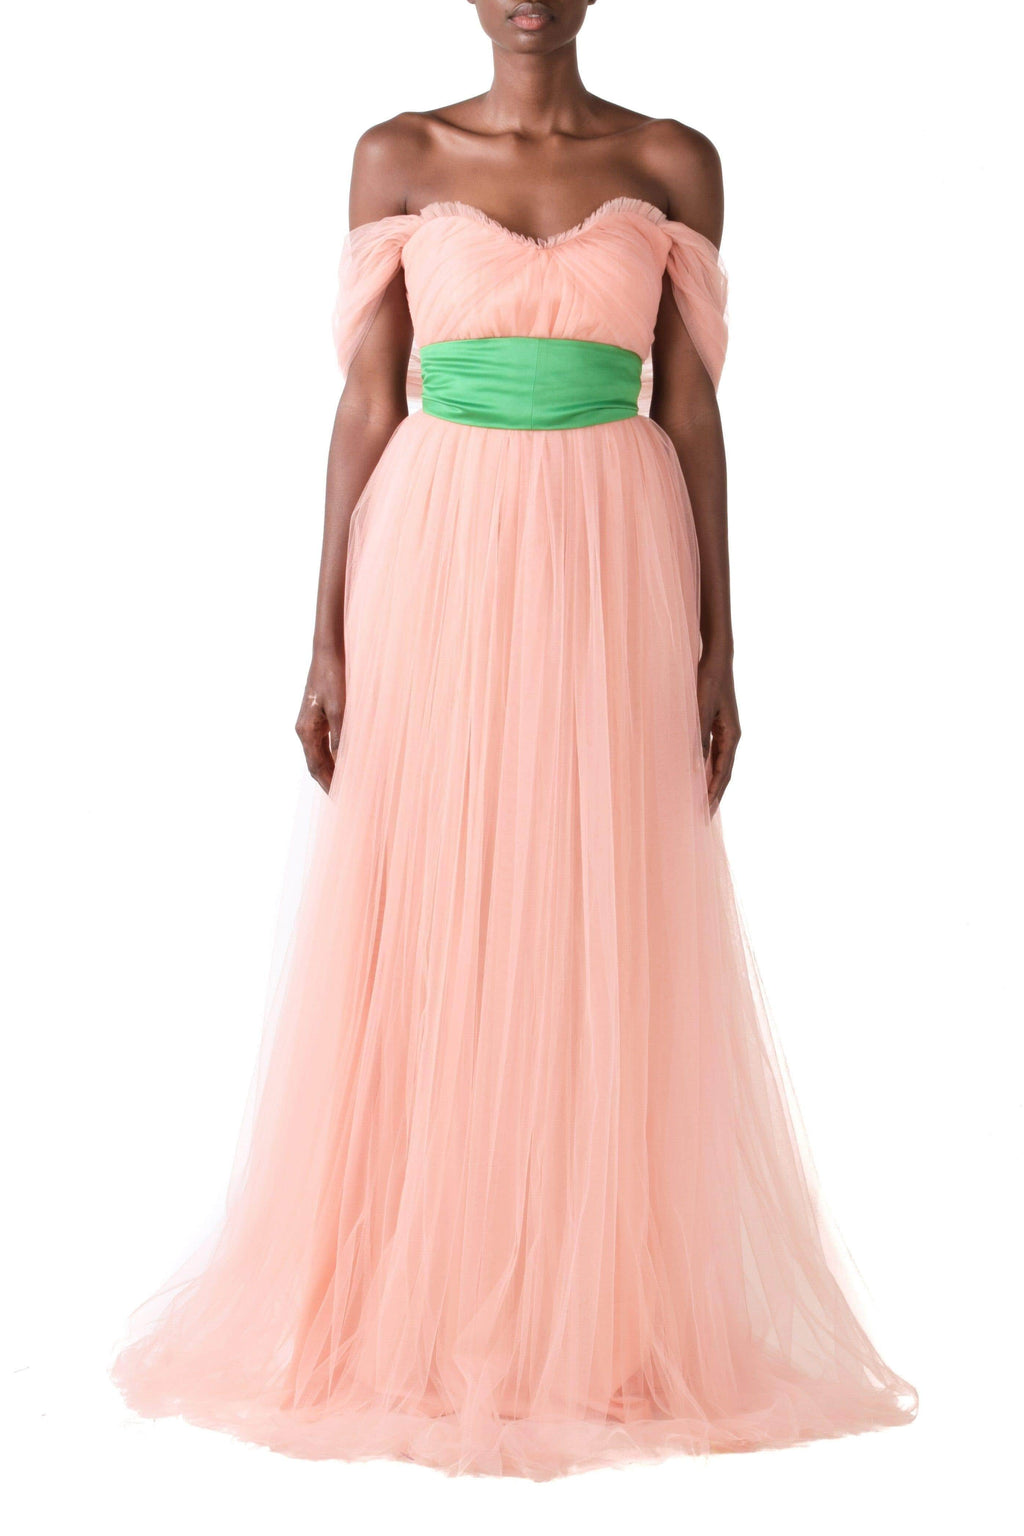 Peach Off Shoulder Tulle Gown With Shawl & Detachable Green Belt - BYTRIBUTE